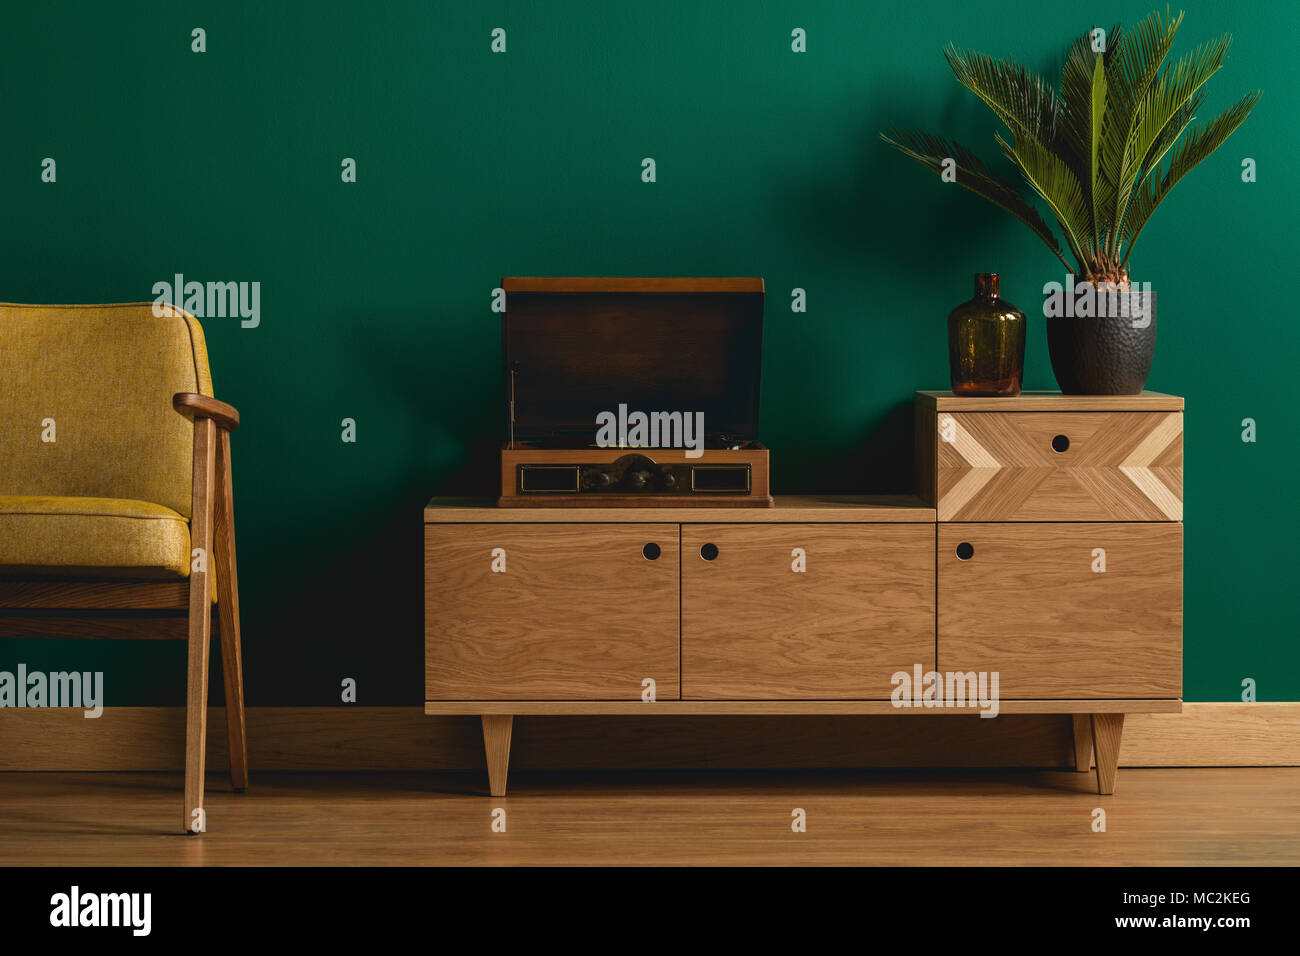 Close Up Of A Retro Wooden Dresser With A Hipster Record Player In A  Minimalist Dark Green Living Room Interior